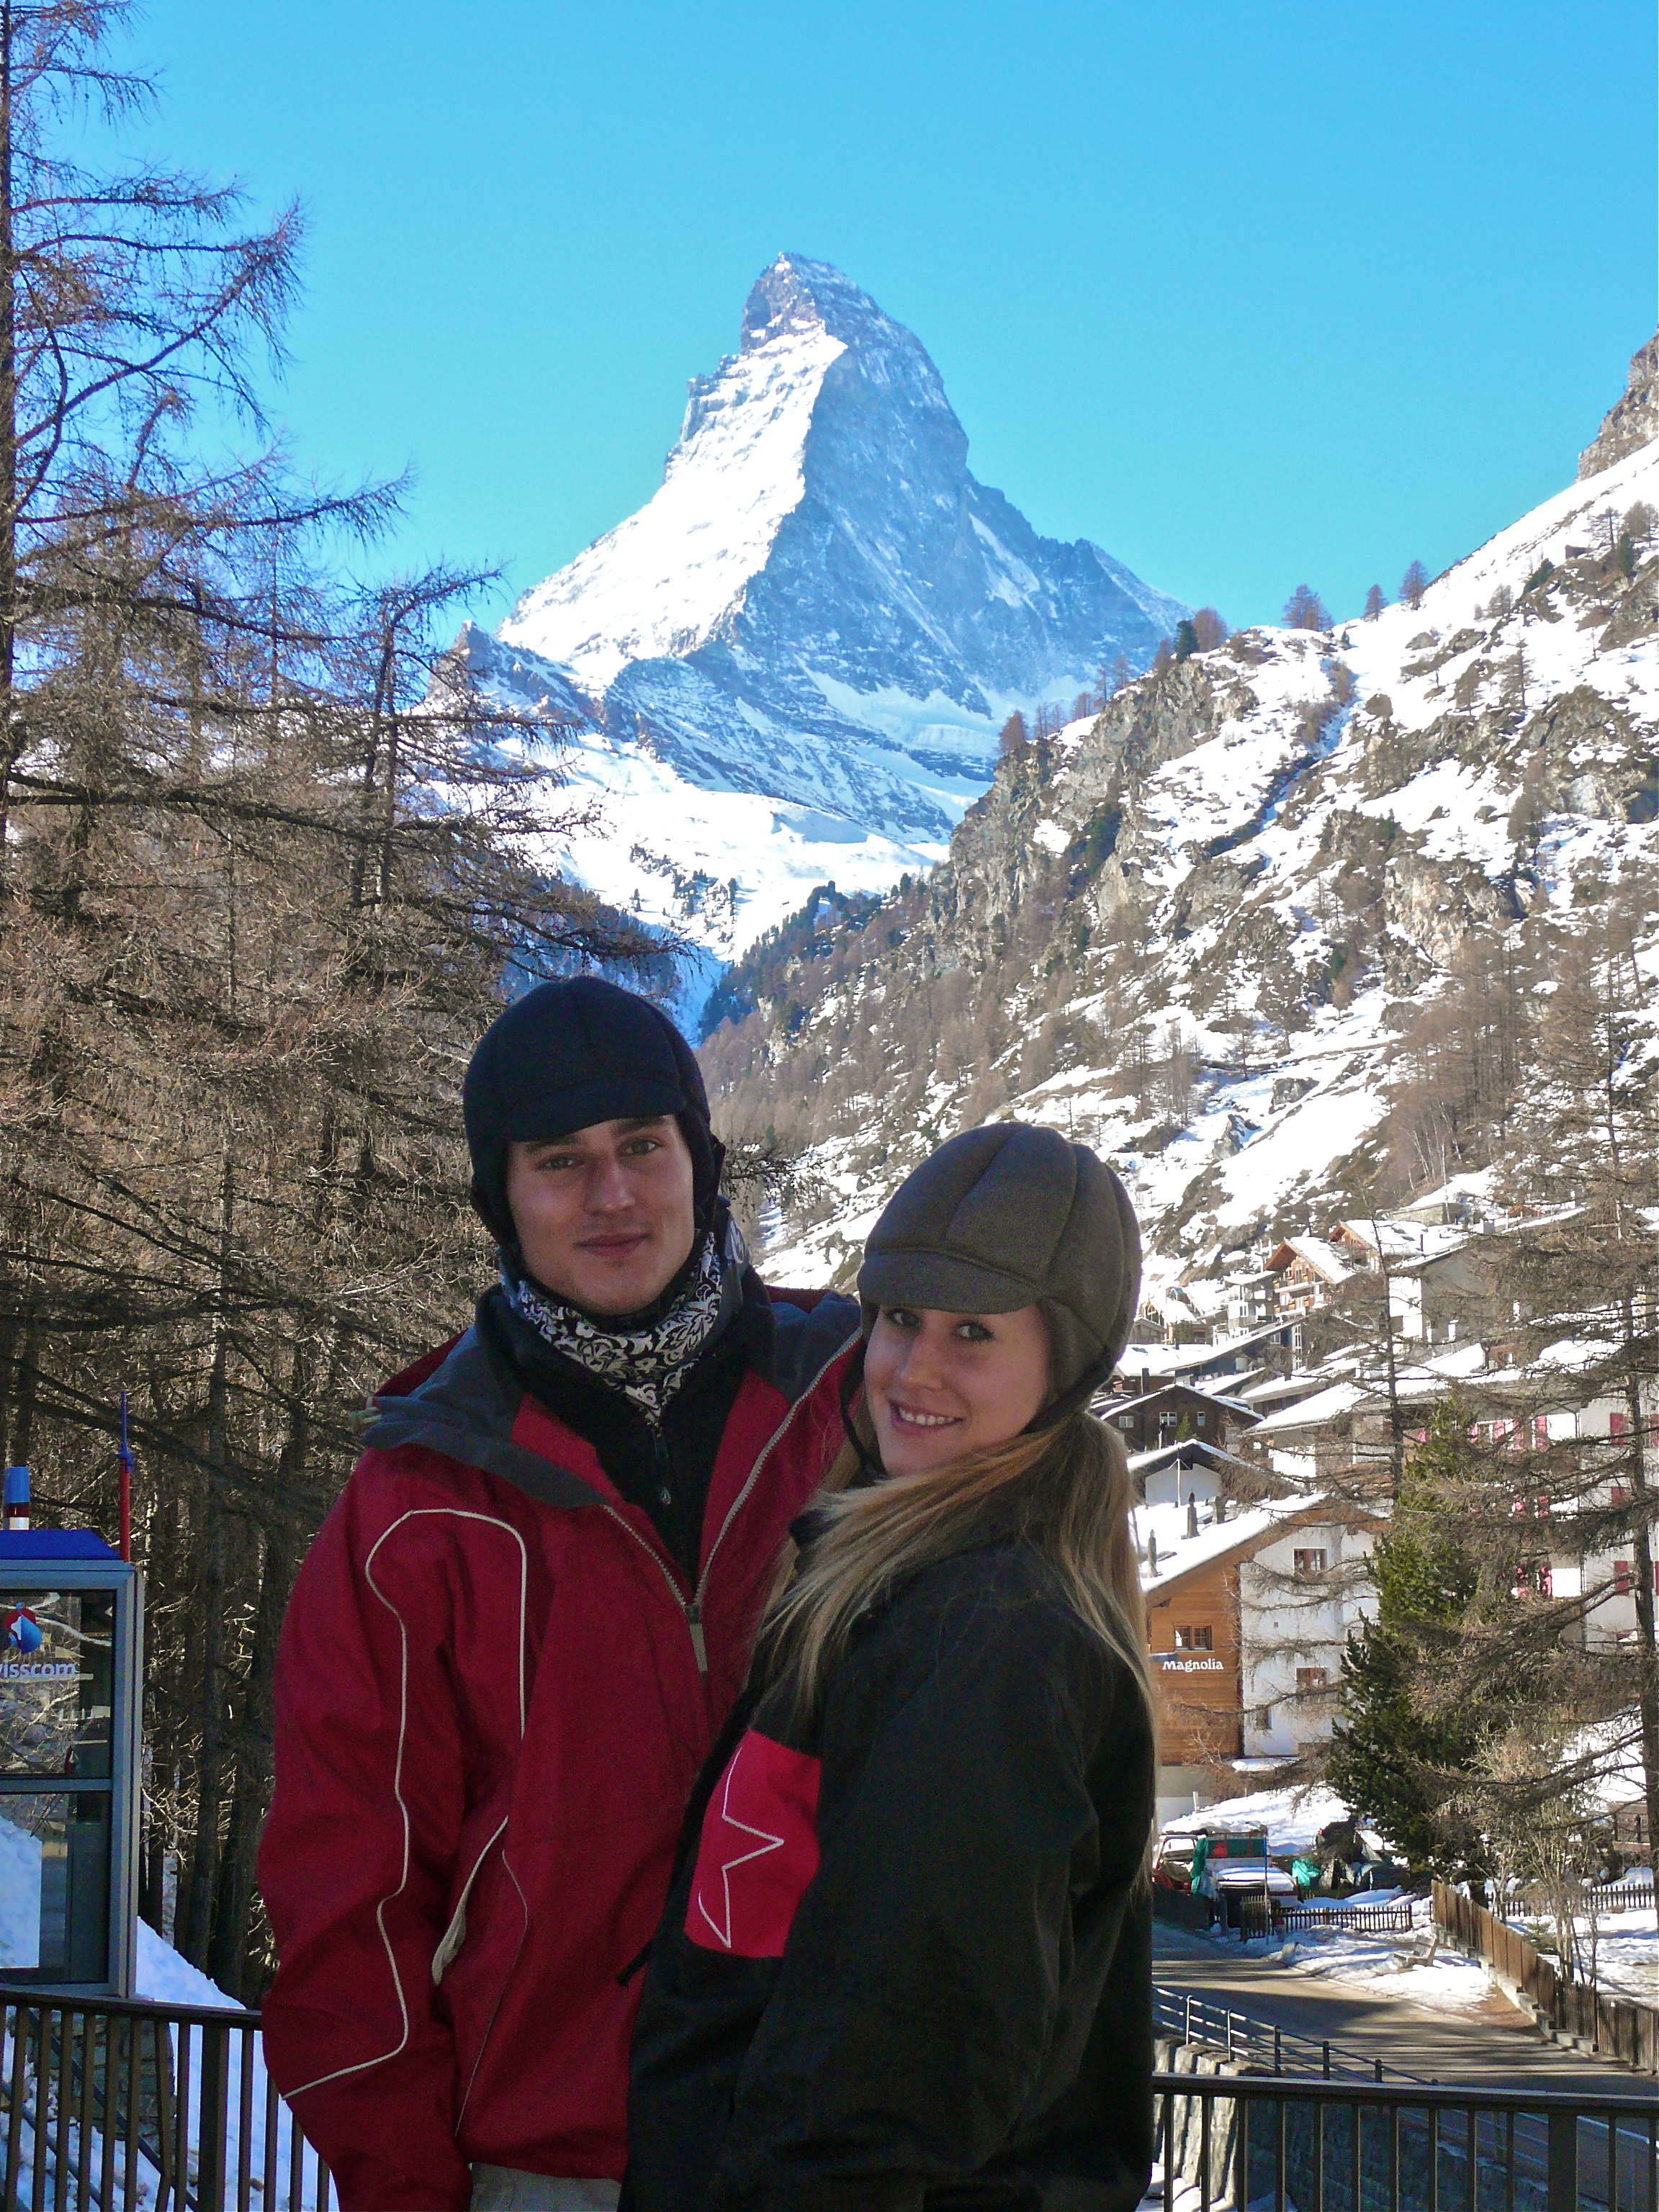 Michael and Linda - skiing at Zermatt, Switzerland with there new Ribcap.